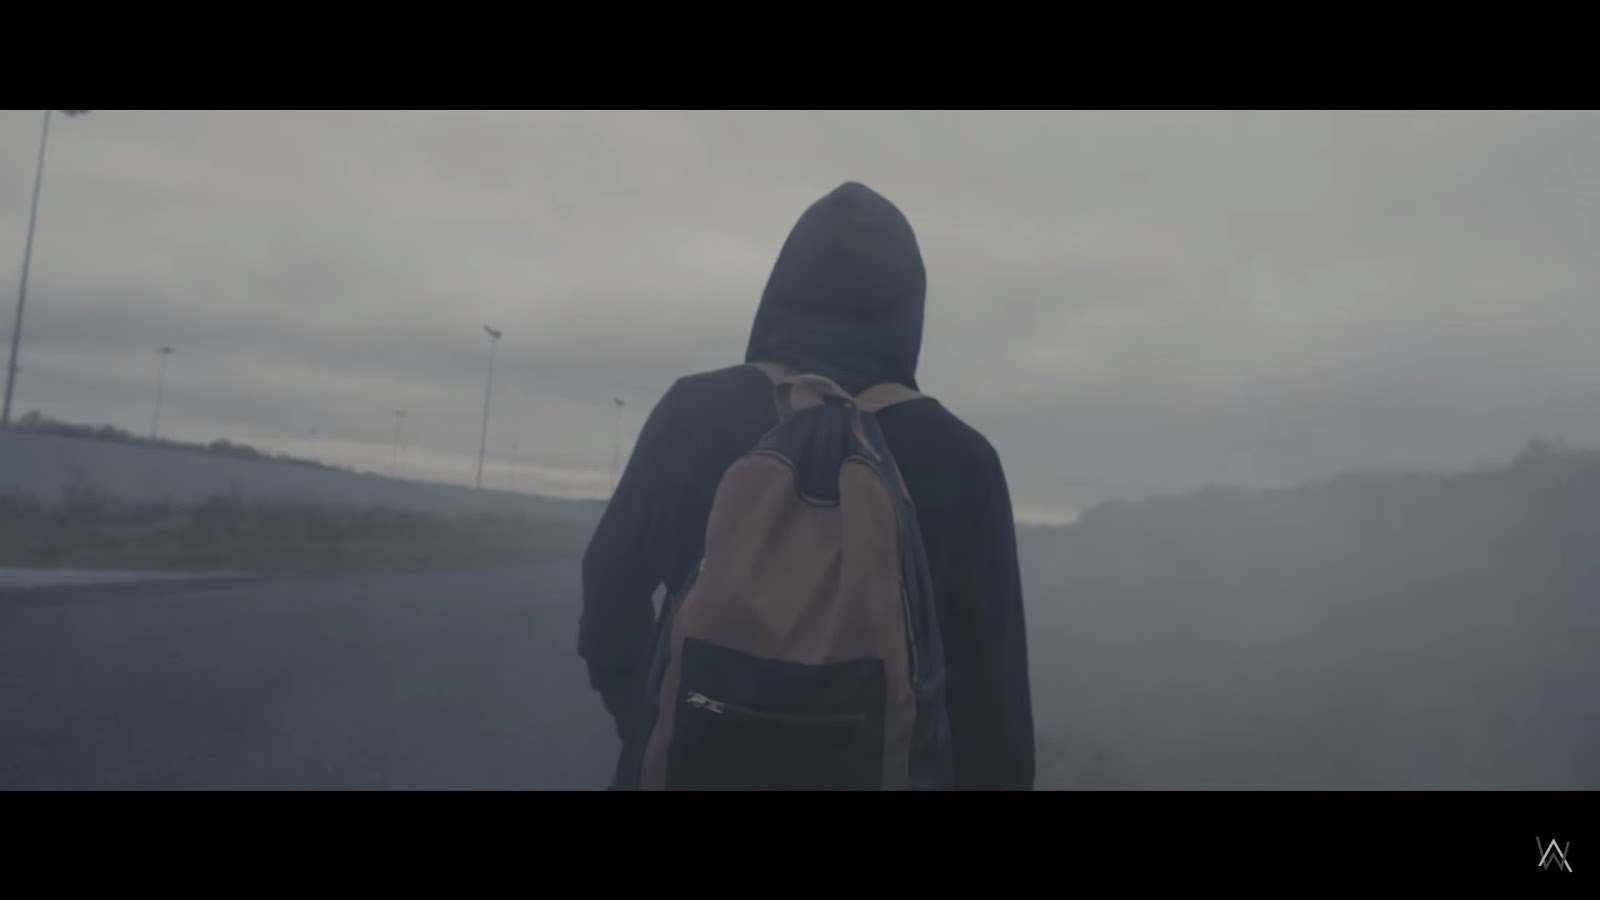 Download Alan Walker Faded Emma Heesters Cover Wallpaper Images Free ...